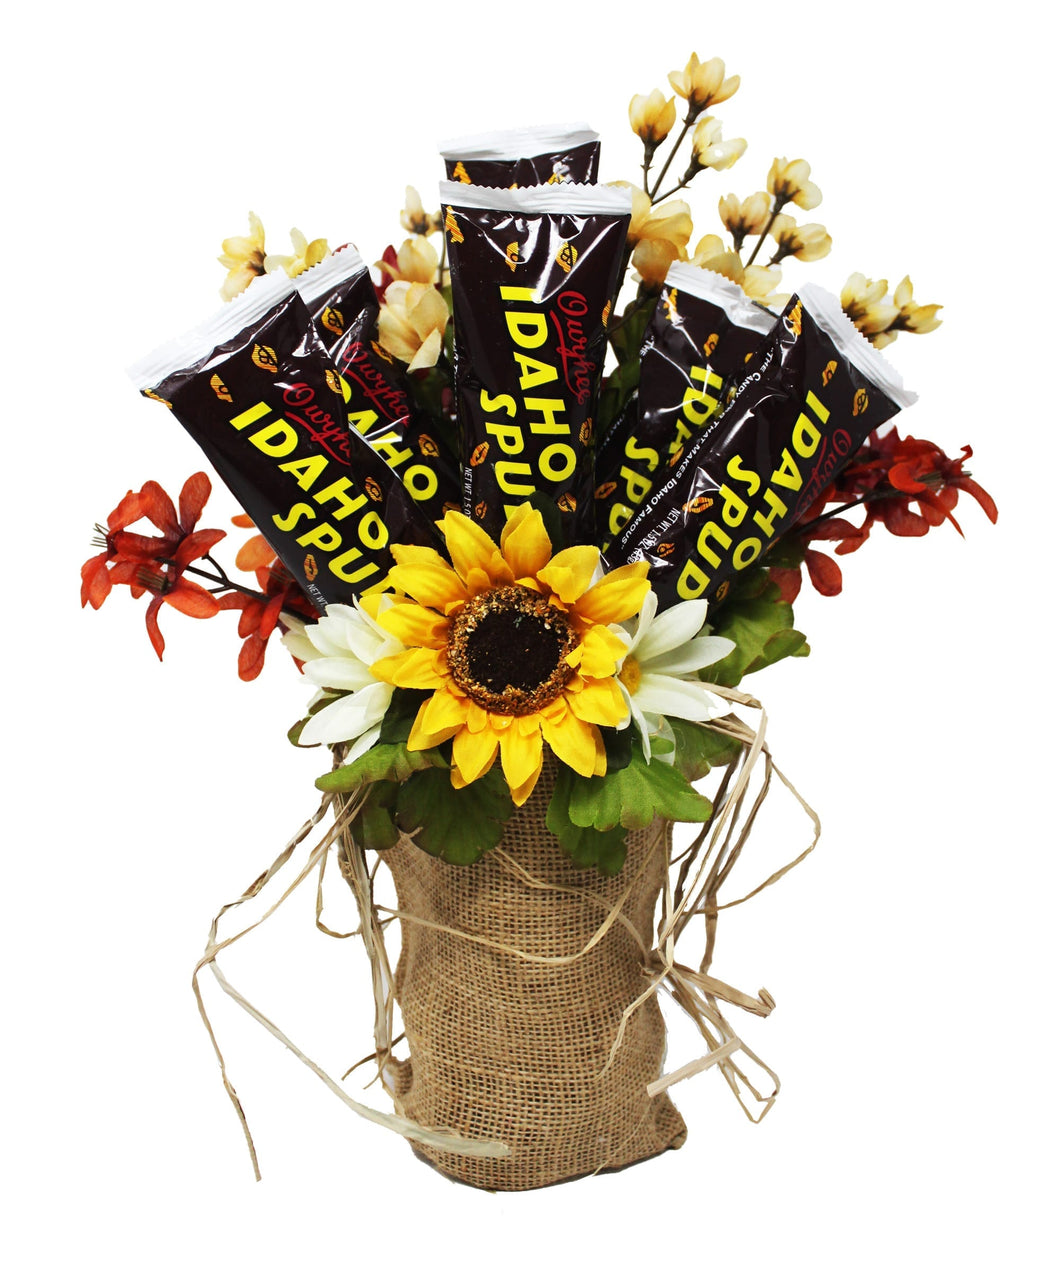 Idaho Spud Candy Bouquet front